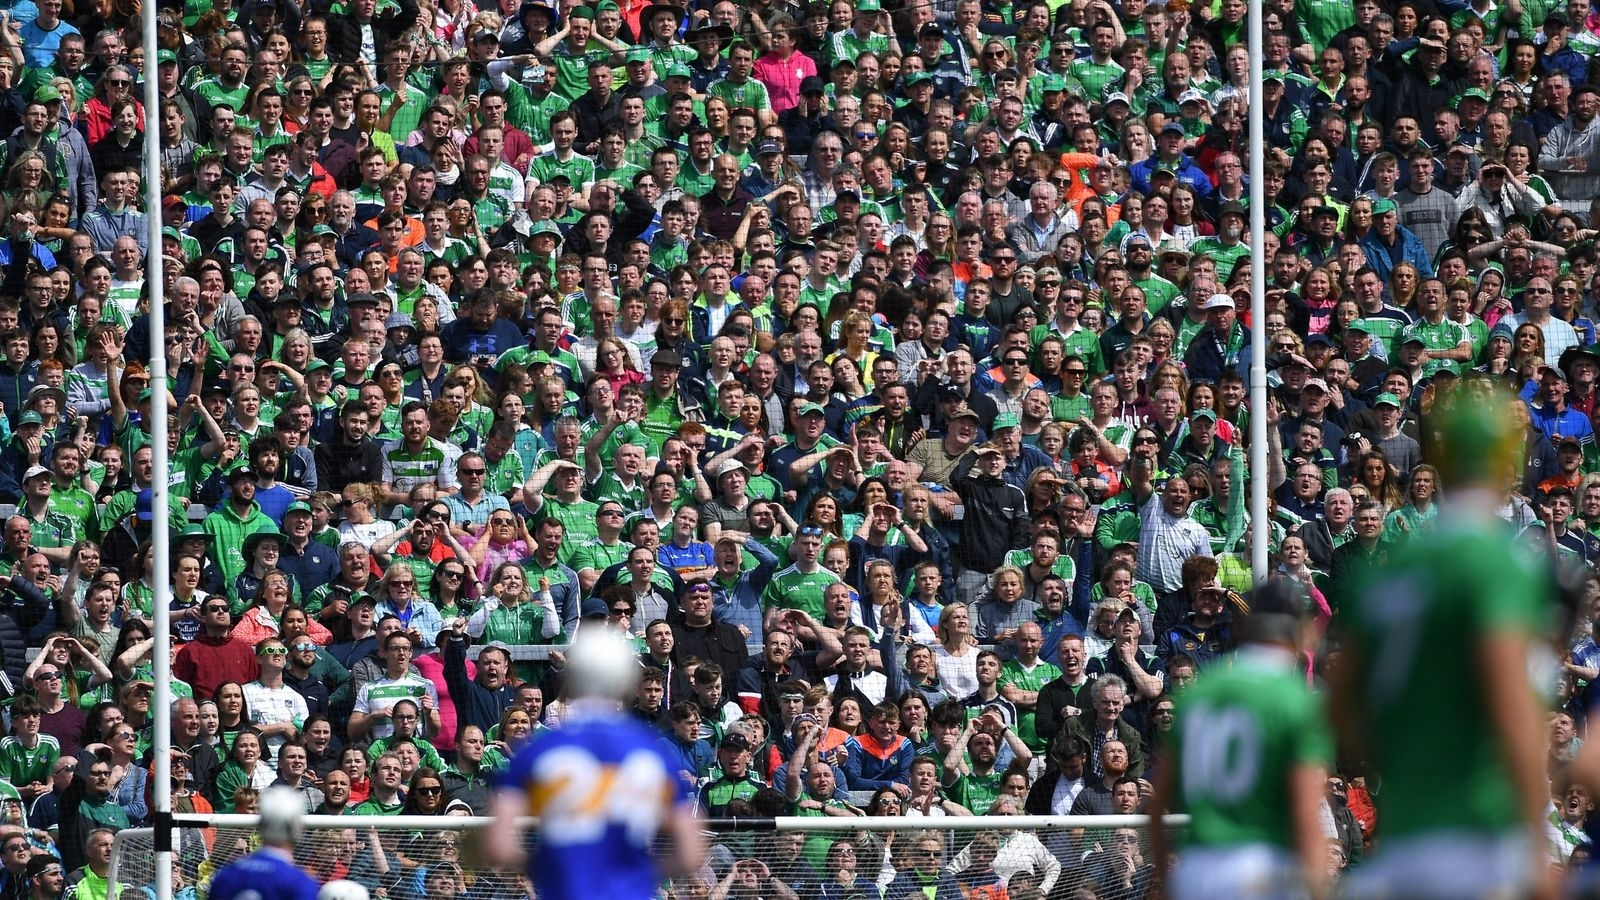 Munster Gaa Chief Kieran Leddy Calls For Compromise On